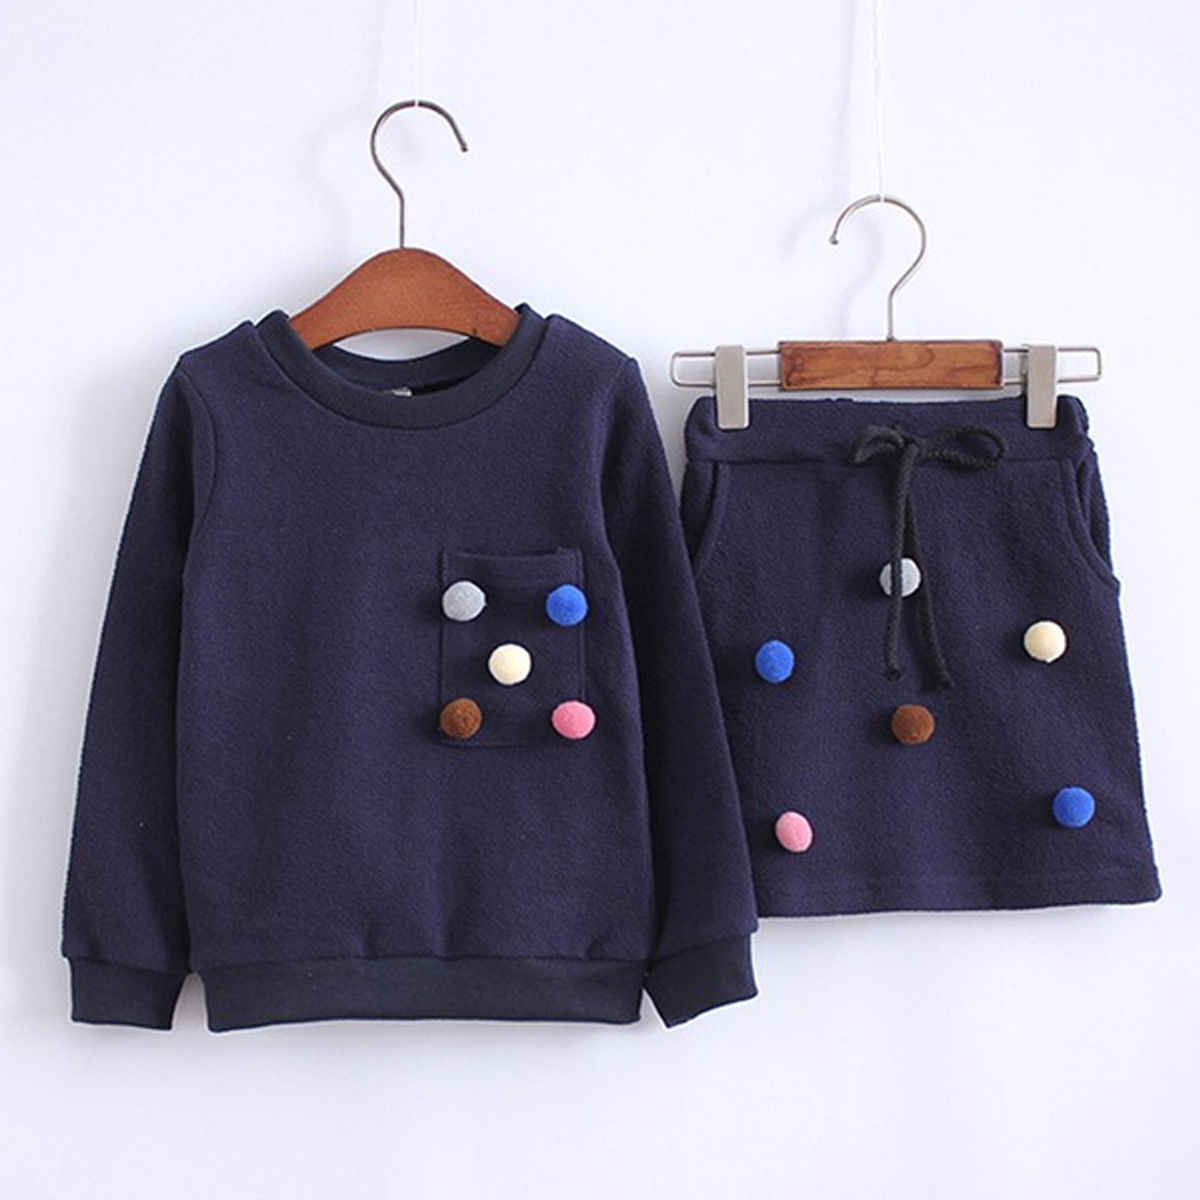 New Fashion Toddler Baby Girls Clothes Sets 2PCS Long Sleeve Solid With Balls Sweatshirts Tops +Mini Skirts Sets 1-6Y